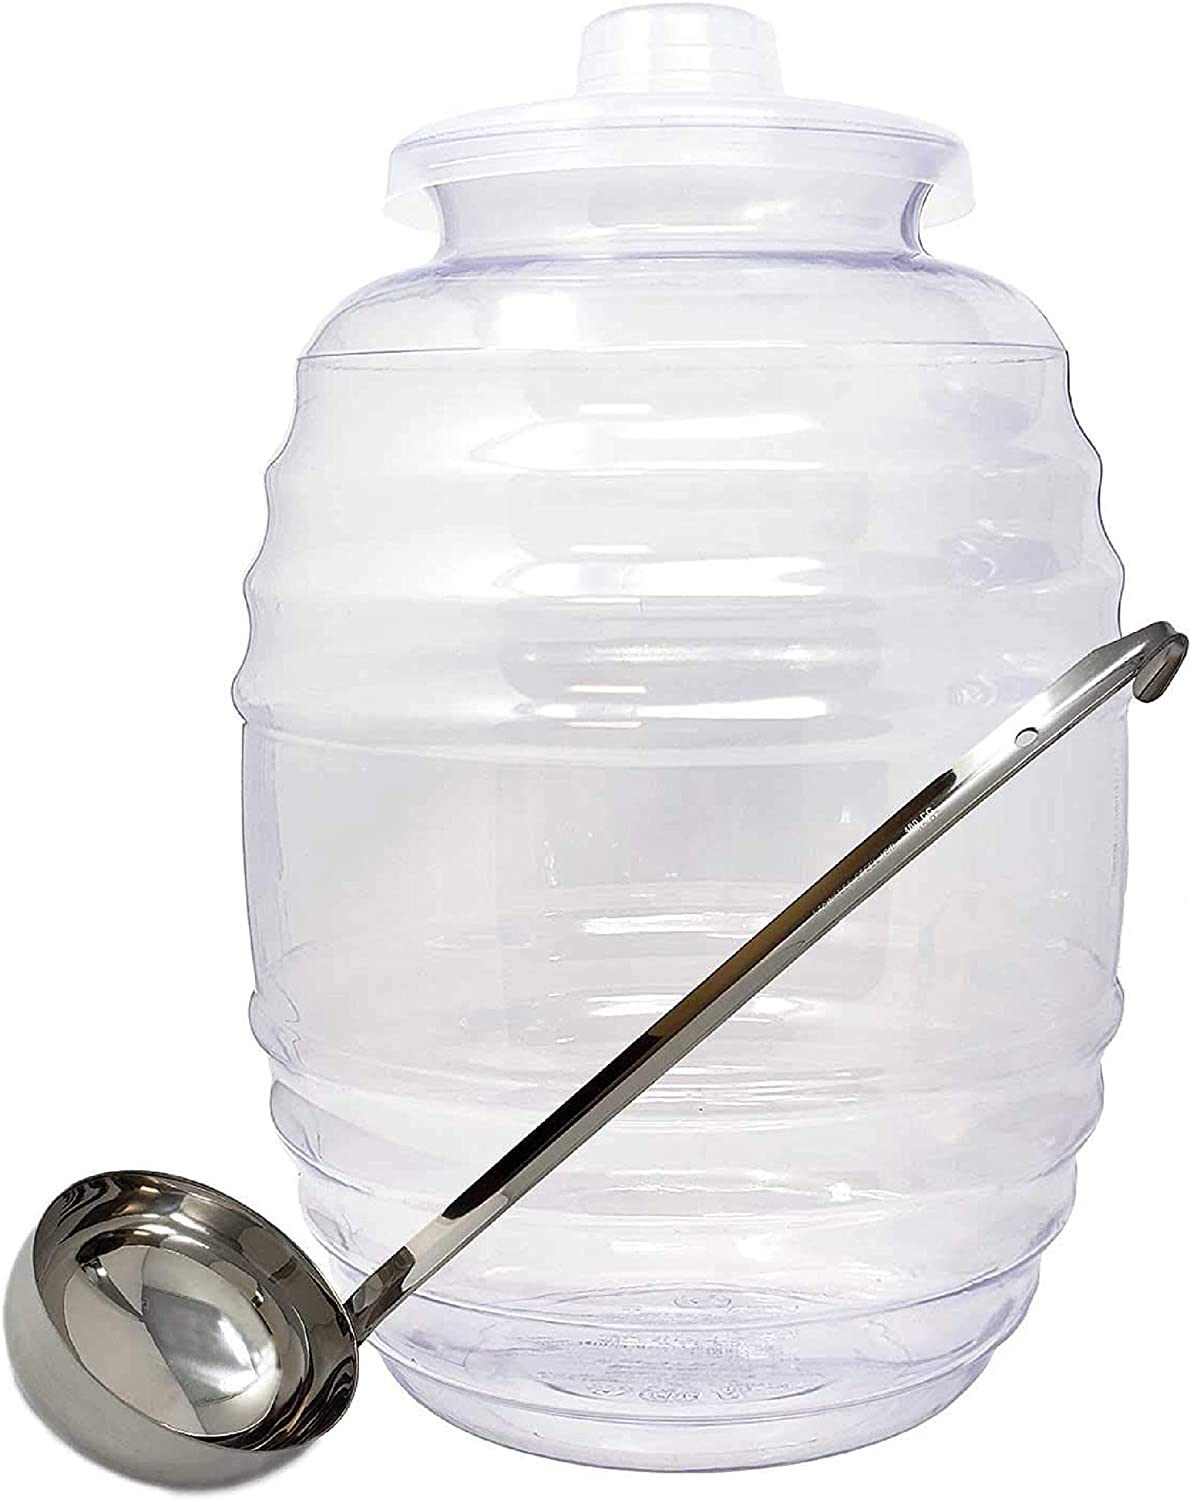 Made In Mexico Vitrolero Aguas Frescas Tapadera Water Jug Juice Beverage Container With Lid & 8 oz Ladle Combo, 3-Gallon 11L - Clear, Party Fiesta Catering - BPA Free Food Grade Plastic-14X10X10